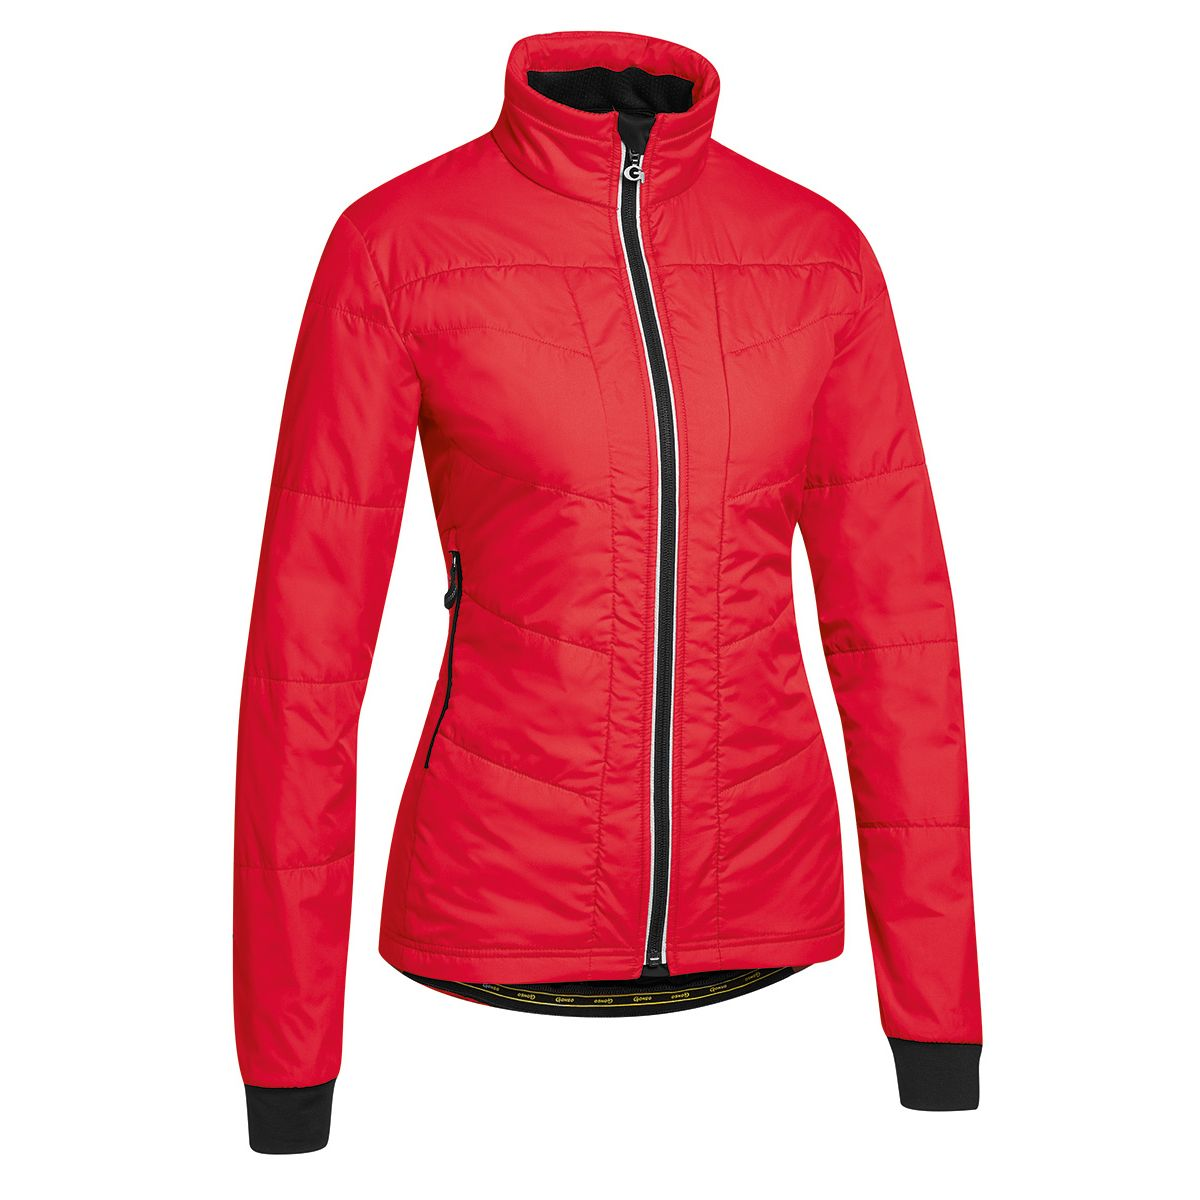 BUCHIT W women's thermal jacket